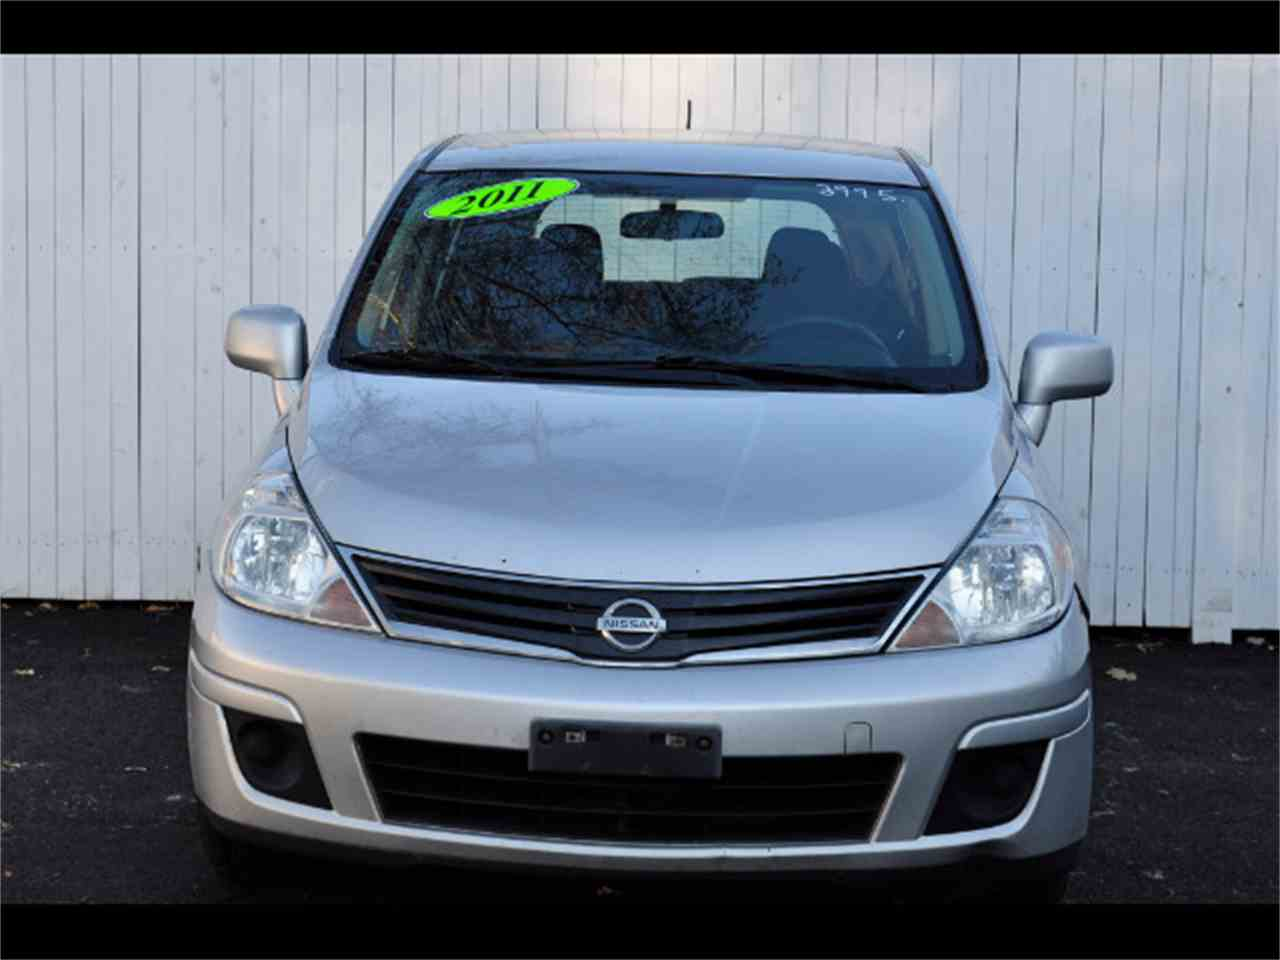 Large Picture of '11 Nissan Versa located in Milford New Hampshire - $3,995.00 Offered by Horseless Carriage - MDL5